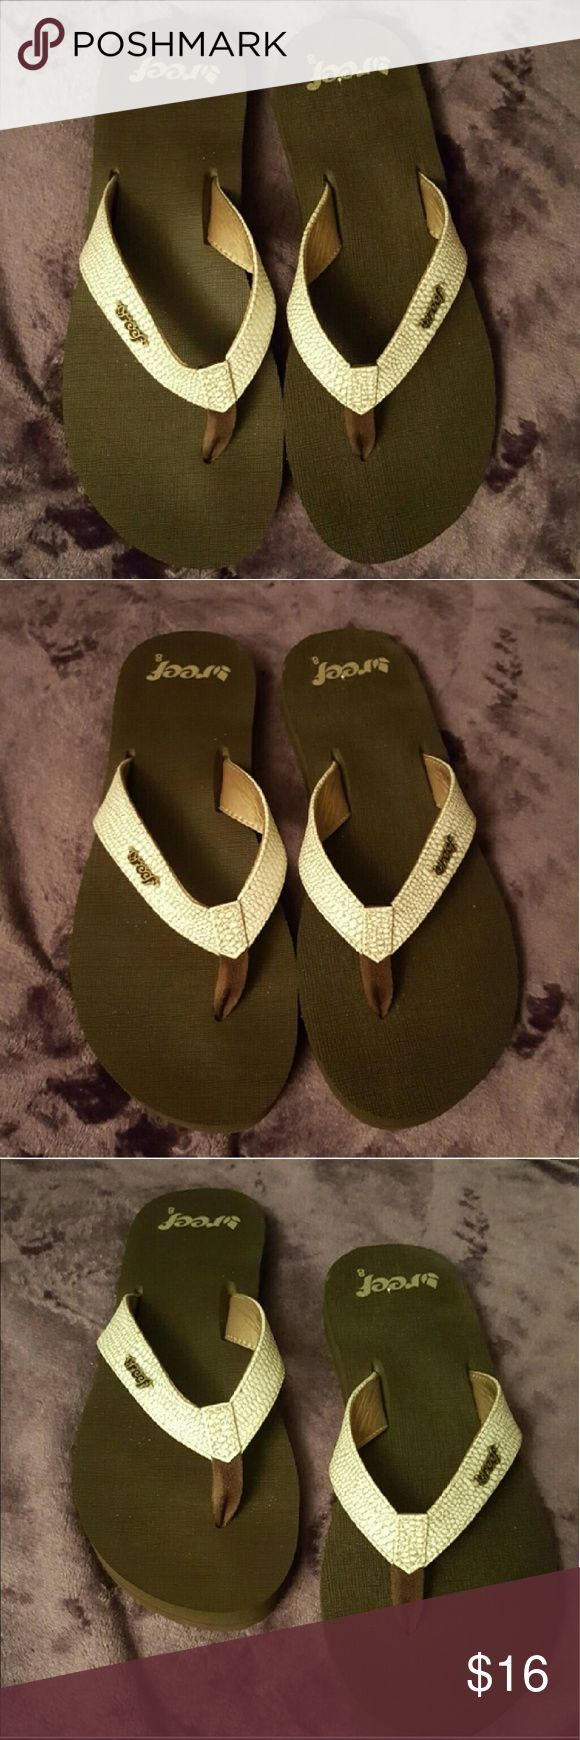 Reef Flip Flops Womens Sz 8 great condition Women's reef flip flops size 8 brown with white with gold shimmers in the leather strap Reef Shoes